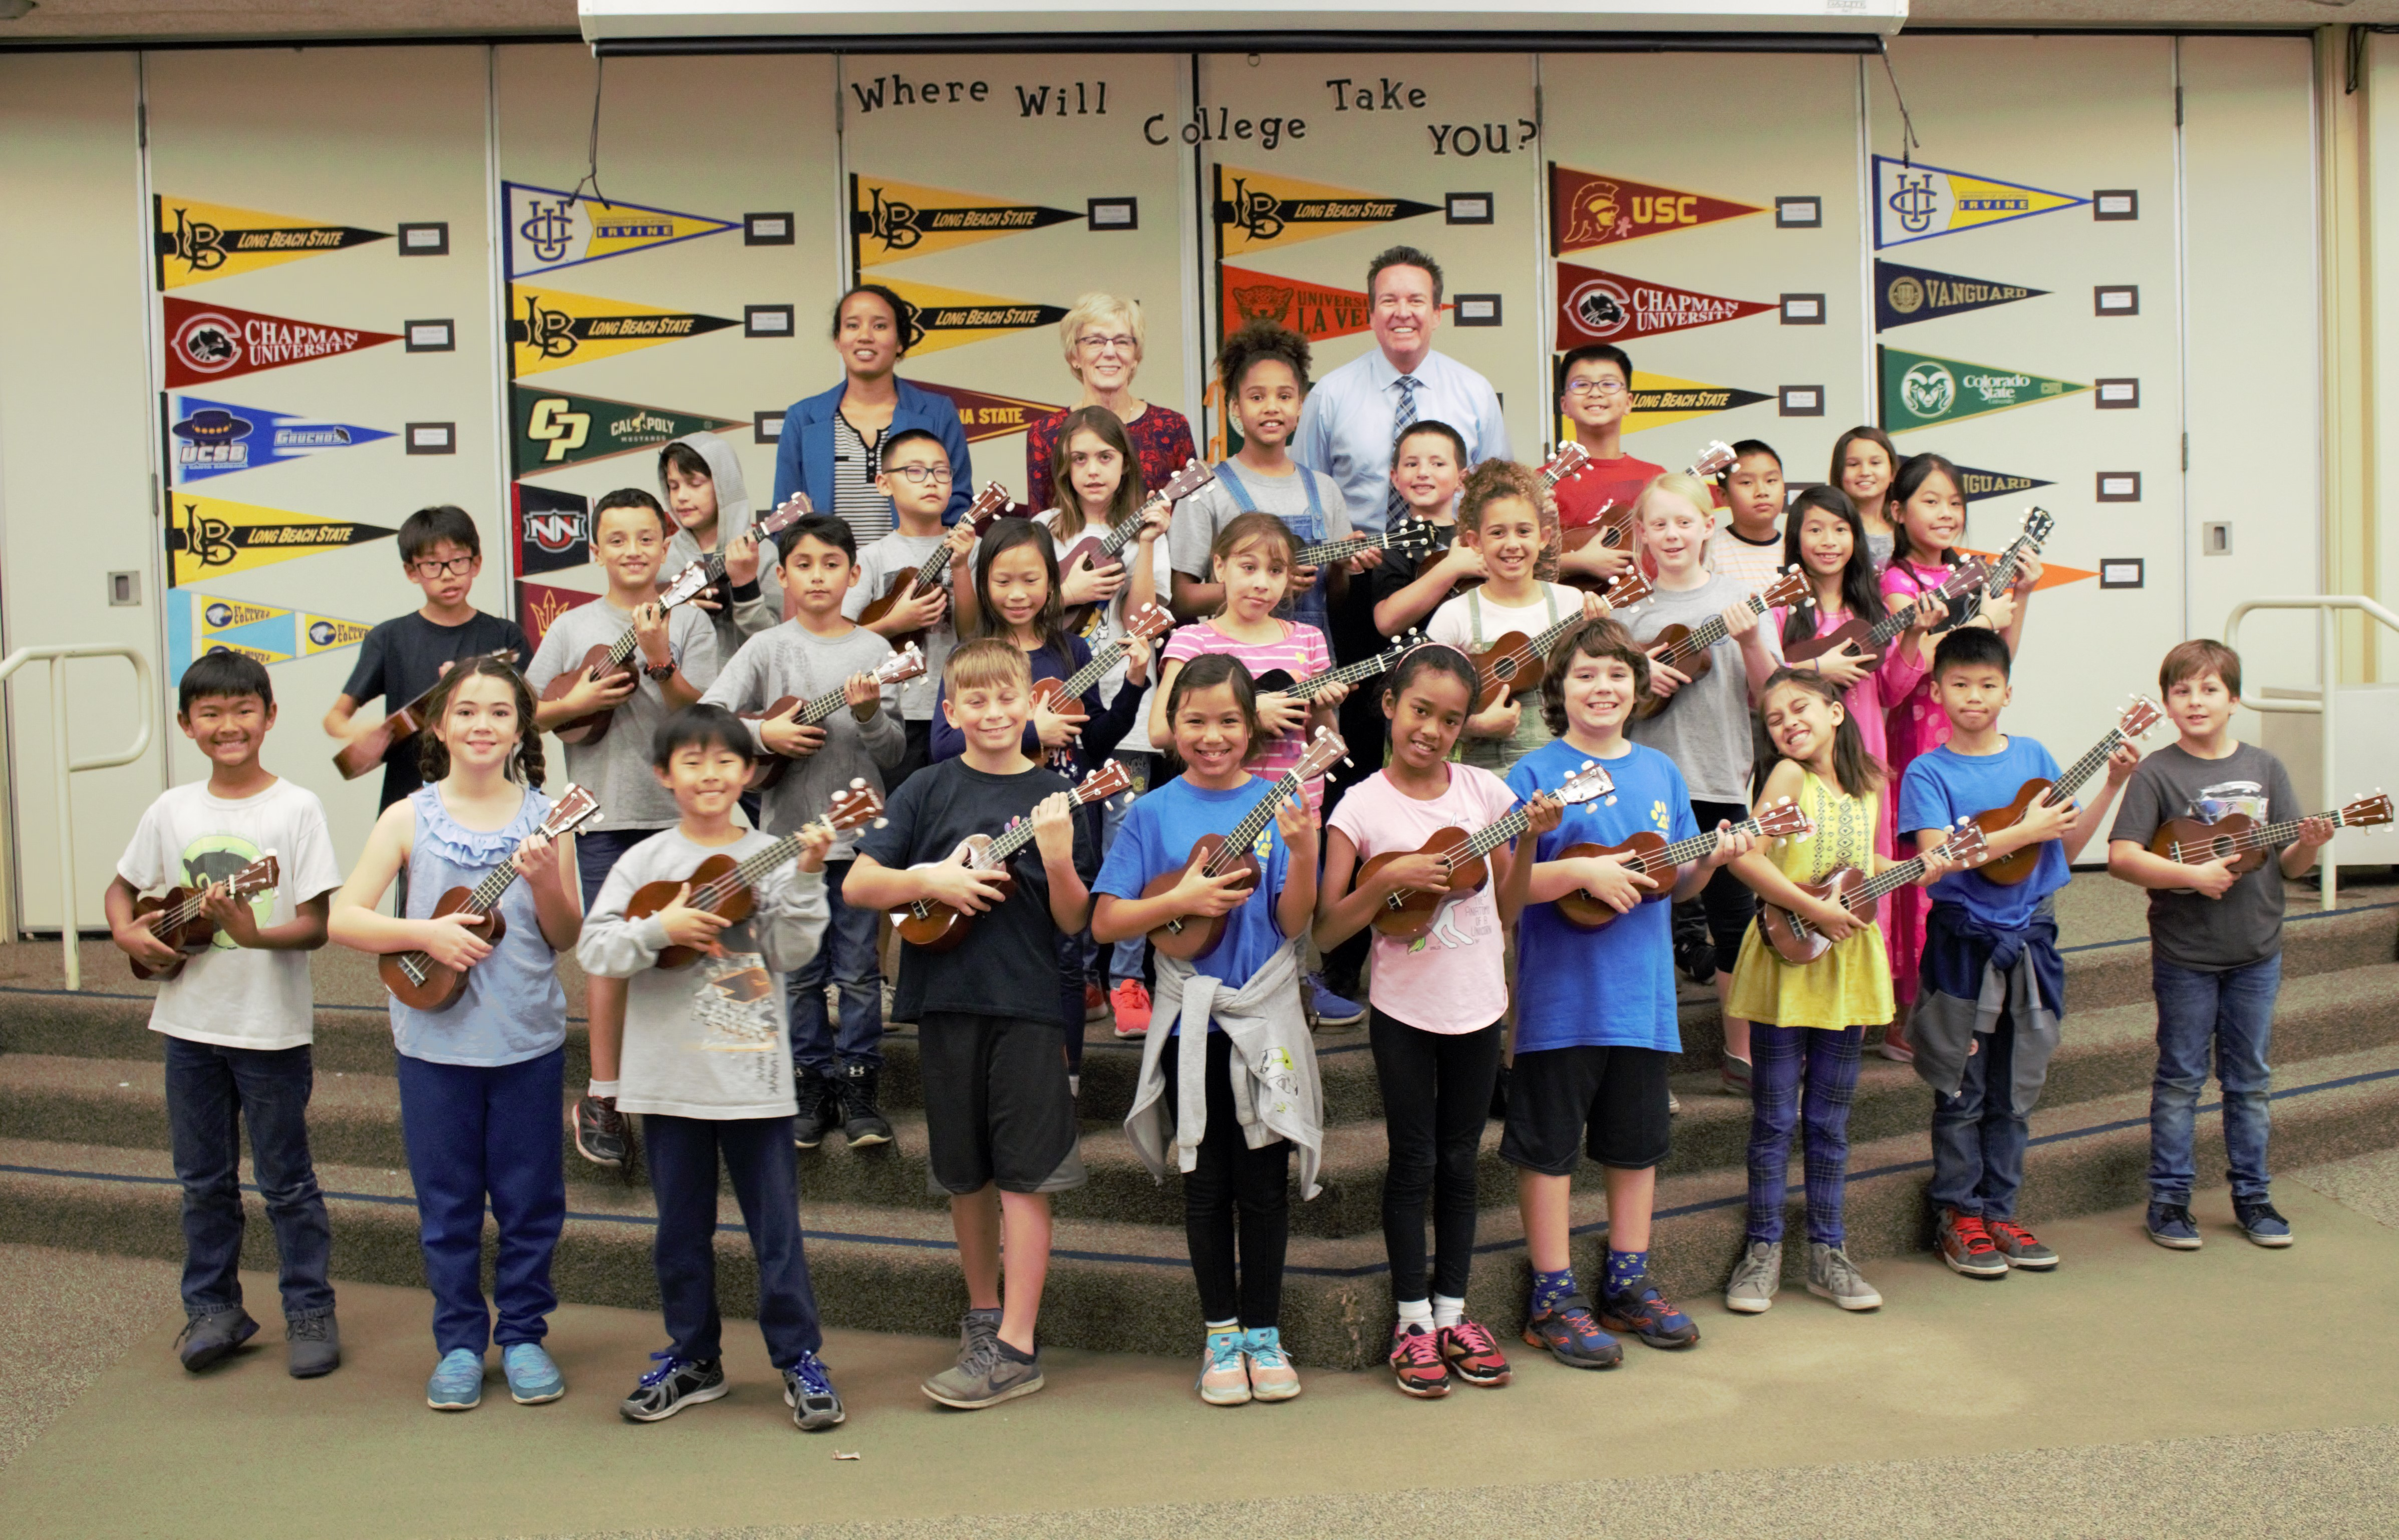 Fourth graders and their ukes